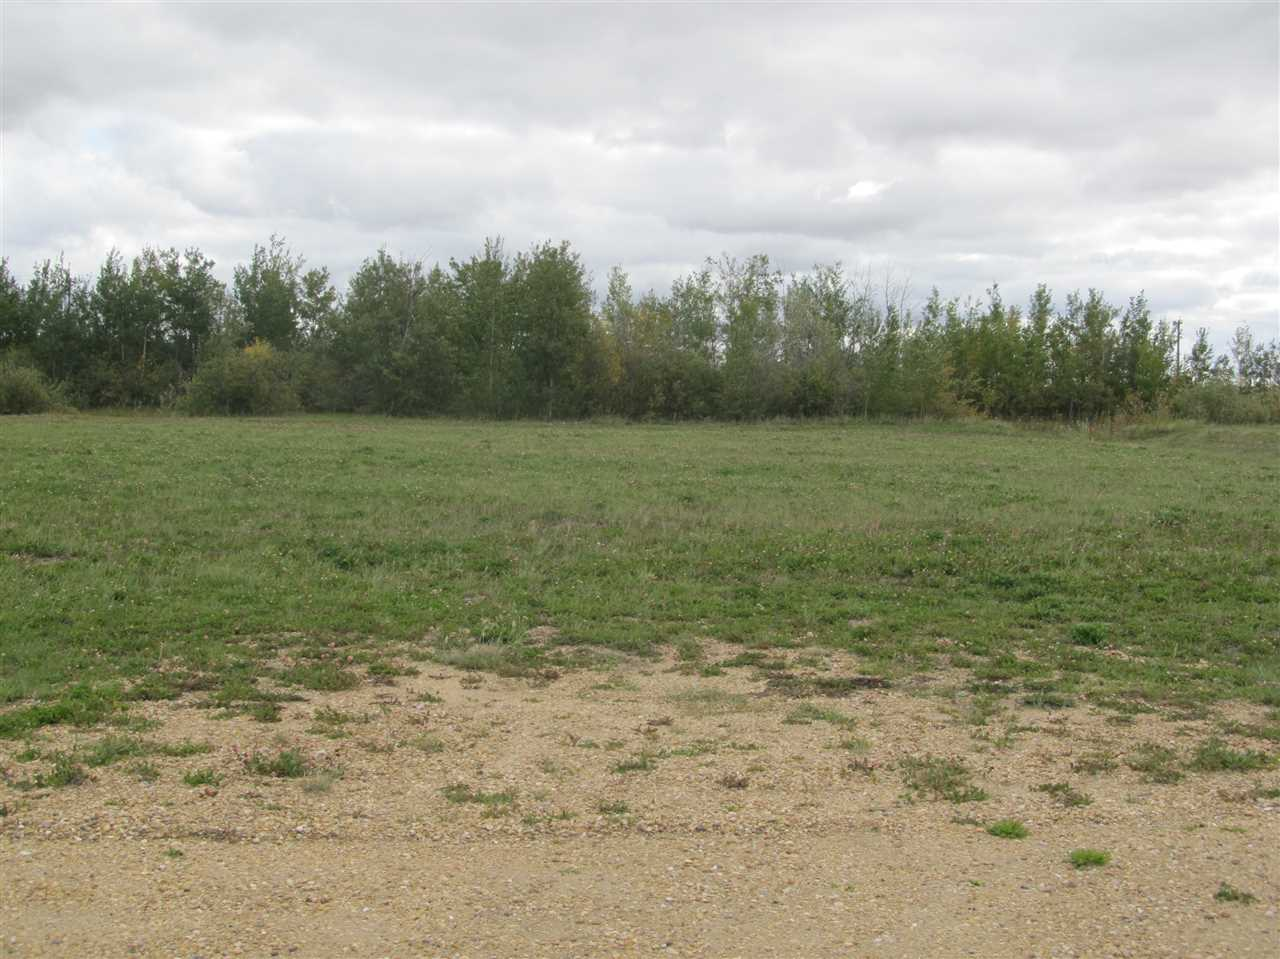 Photo 4: 59512 RR 255: Rural Westlock County Rural Land/Vacant Lot for sale : MLS(r) # E4037975